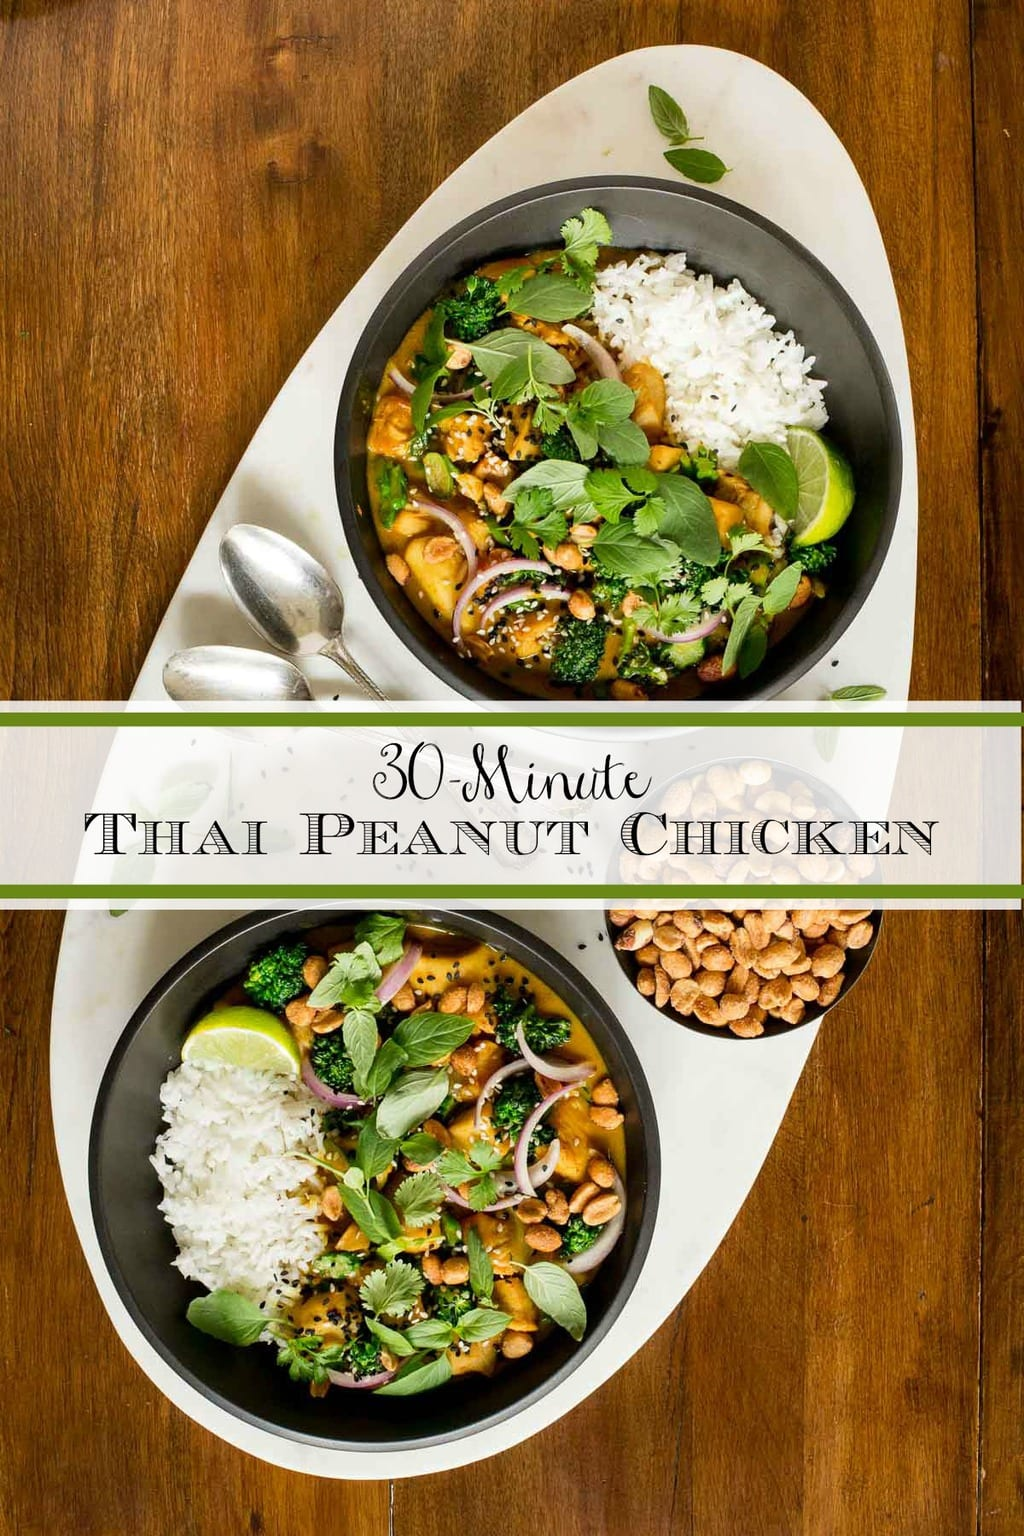 This Thai Peanut Chicken with super tender chicken, healthy veggies and a silky smooth Asian peanut sauce comes together in less time than ordering takeout! #thaipeanutchicken, #easypeanutchicken, #asianpeanutchicken, #quickasianchickenrecipe